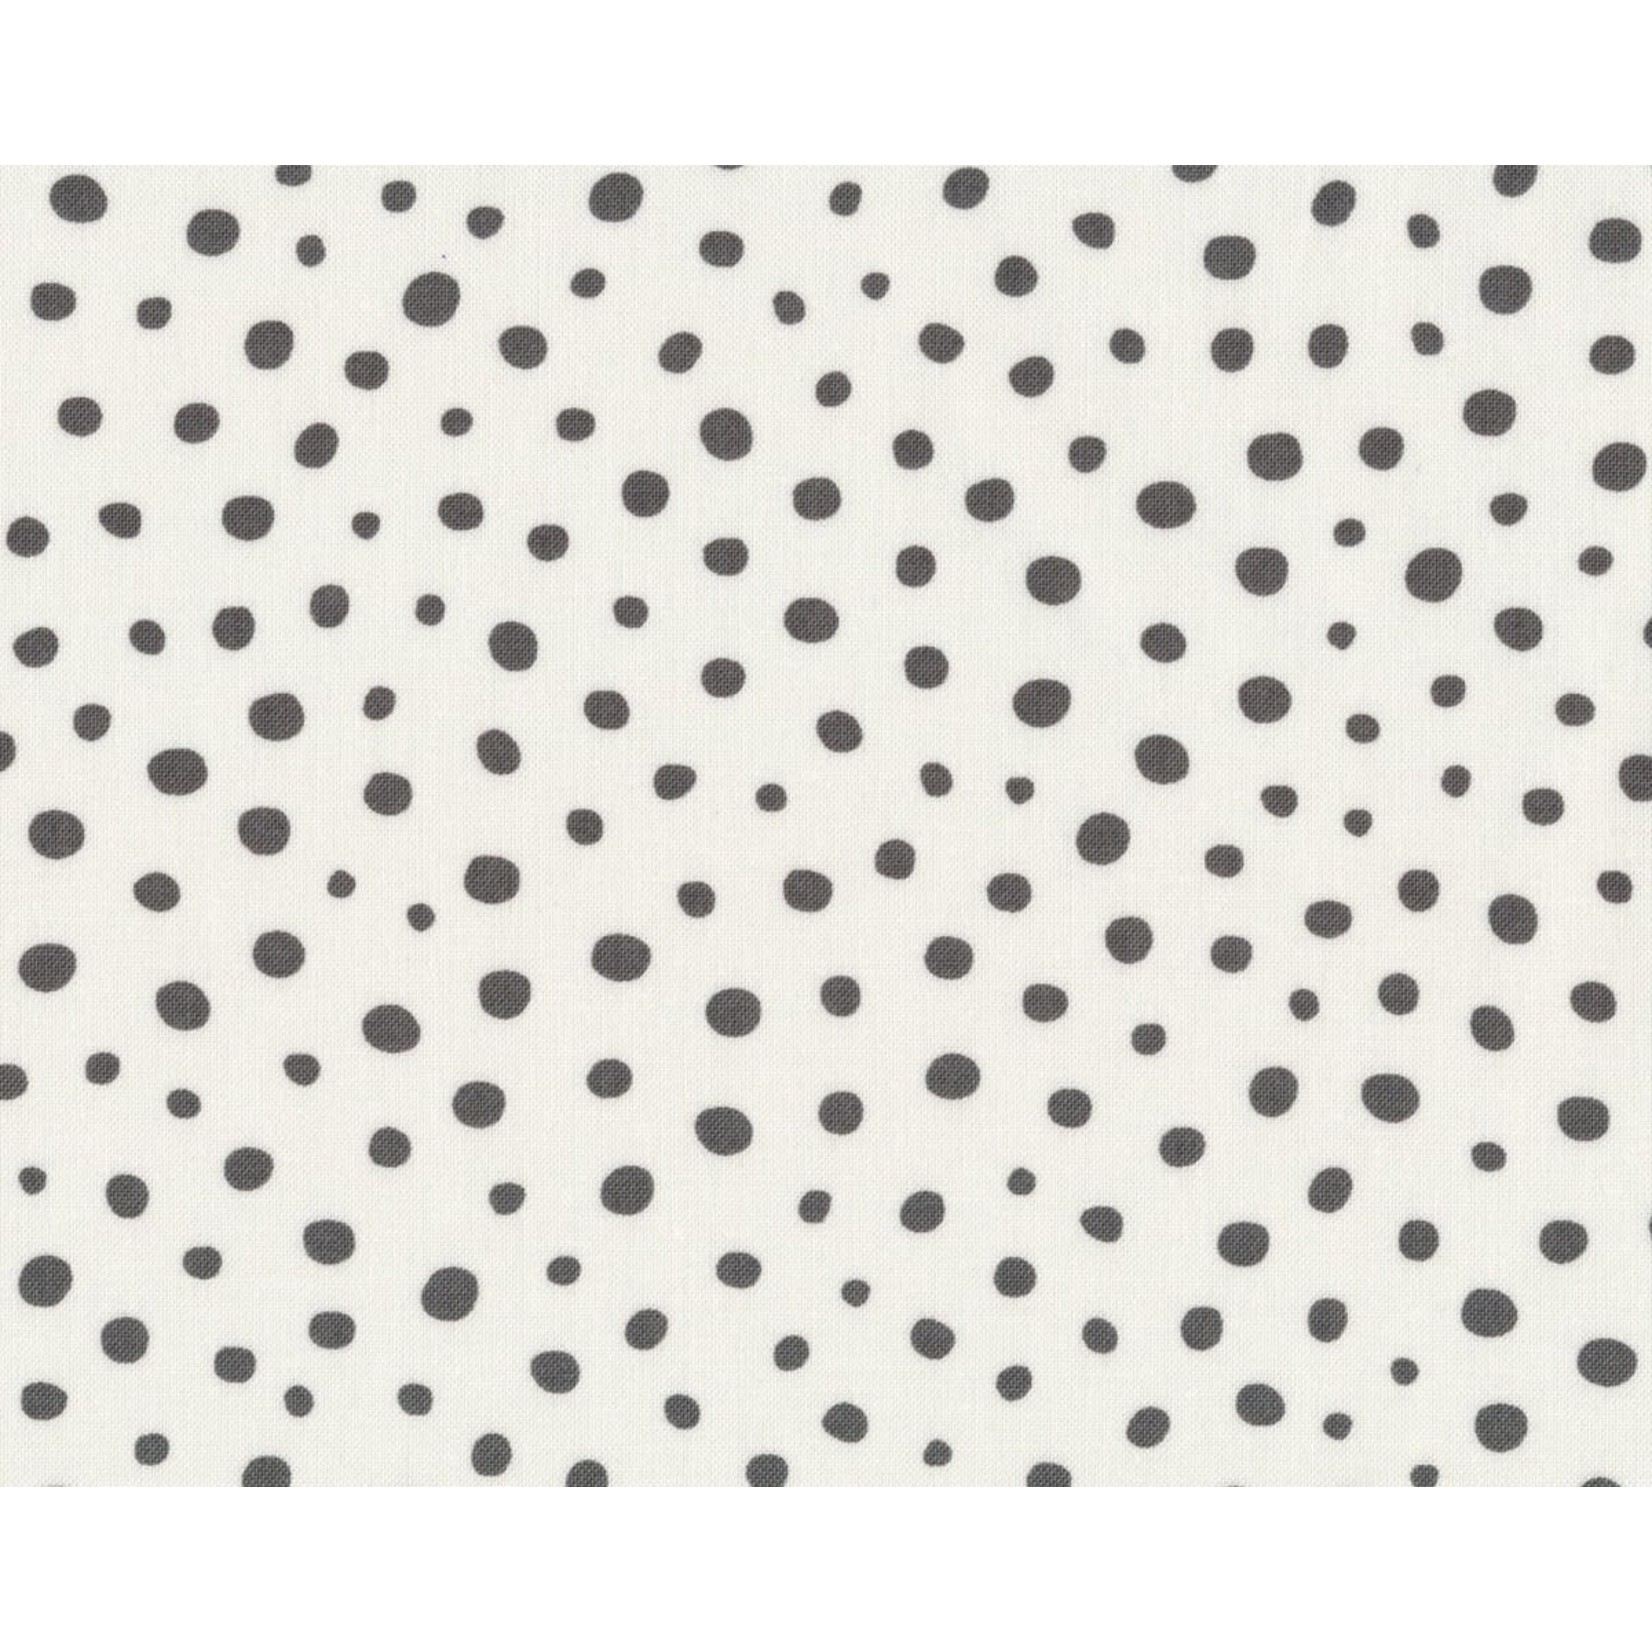 SAVANNAH, SPOTTED, CHARCOAL PER CM OR $20/M